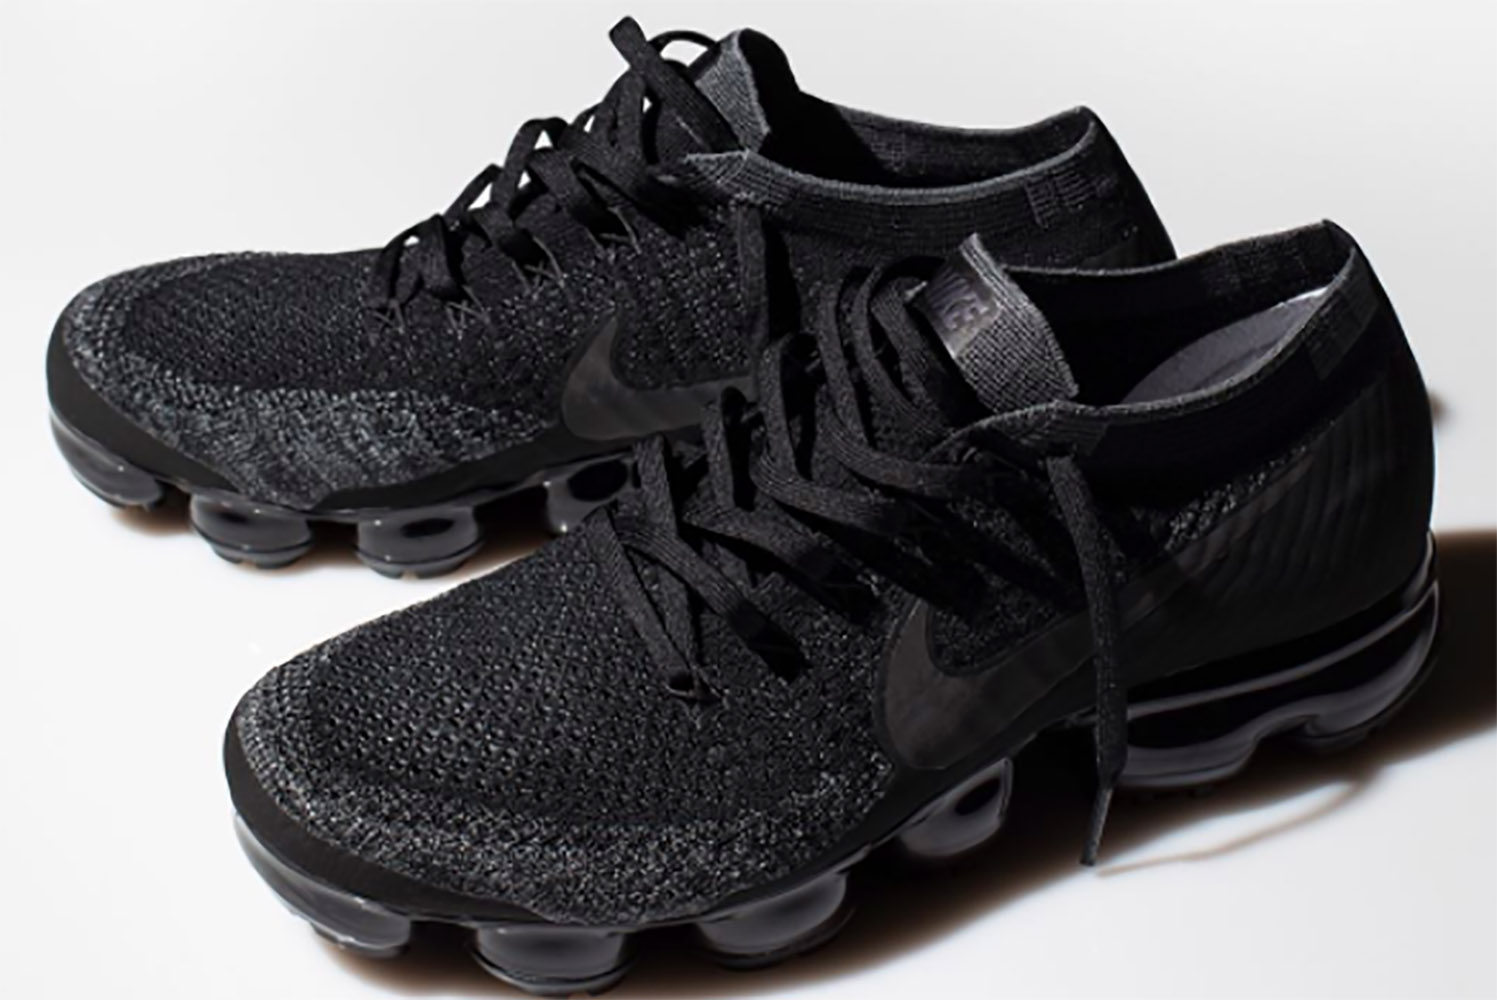 a detailed look at the super limited triple black nike air vapormax unknownmale. Black Bedroom Furniture Sets. Home Design Ideas